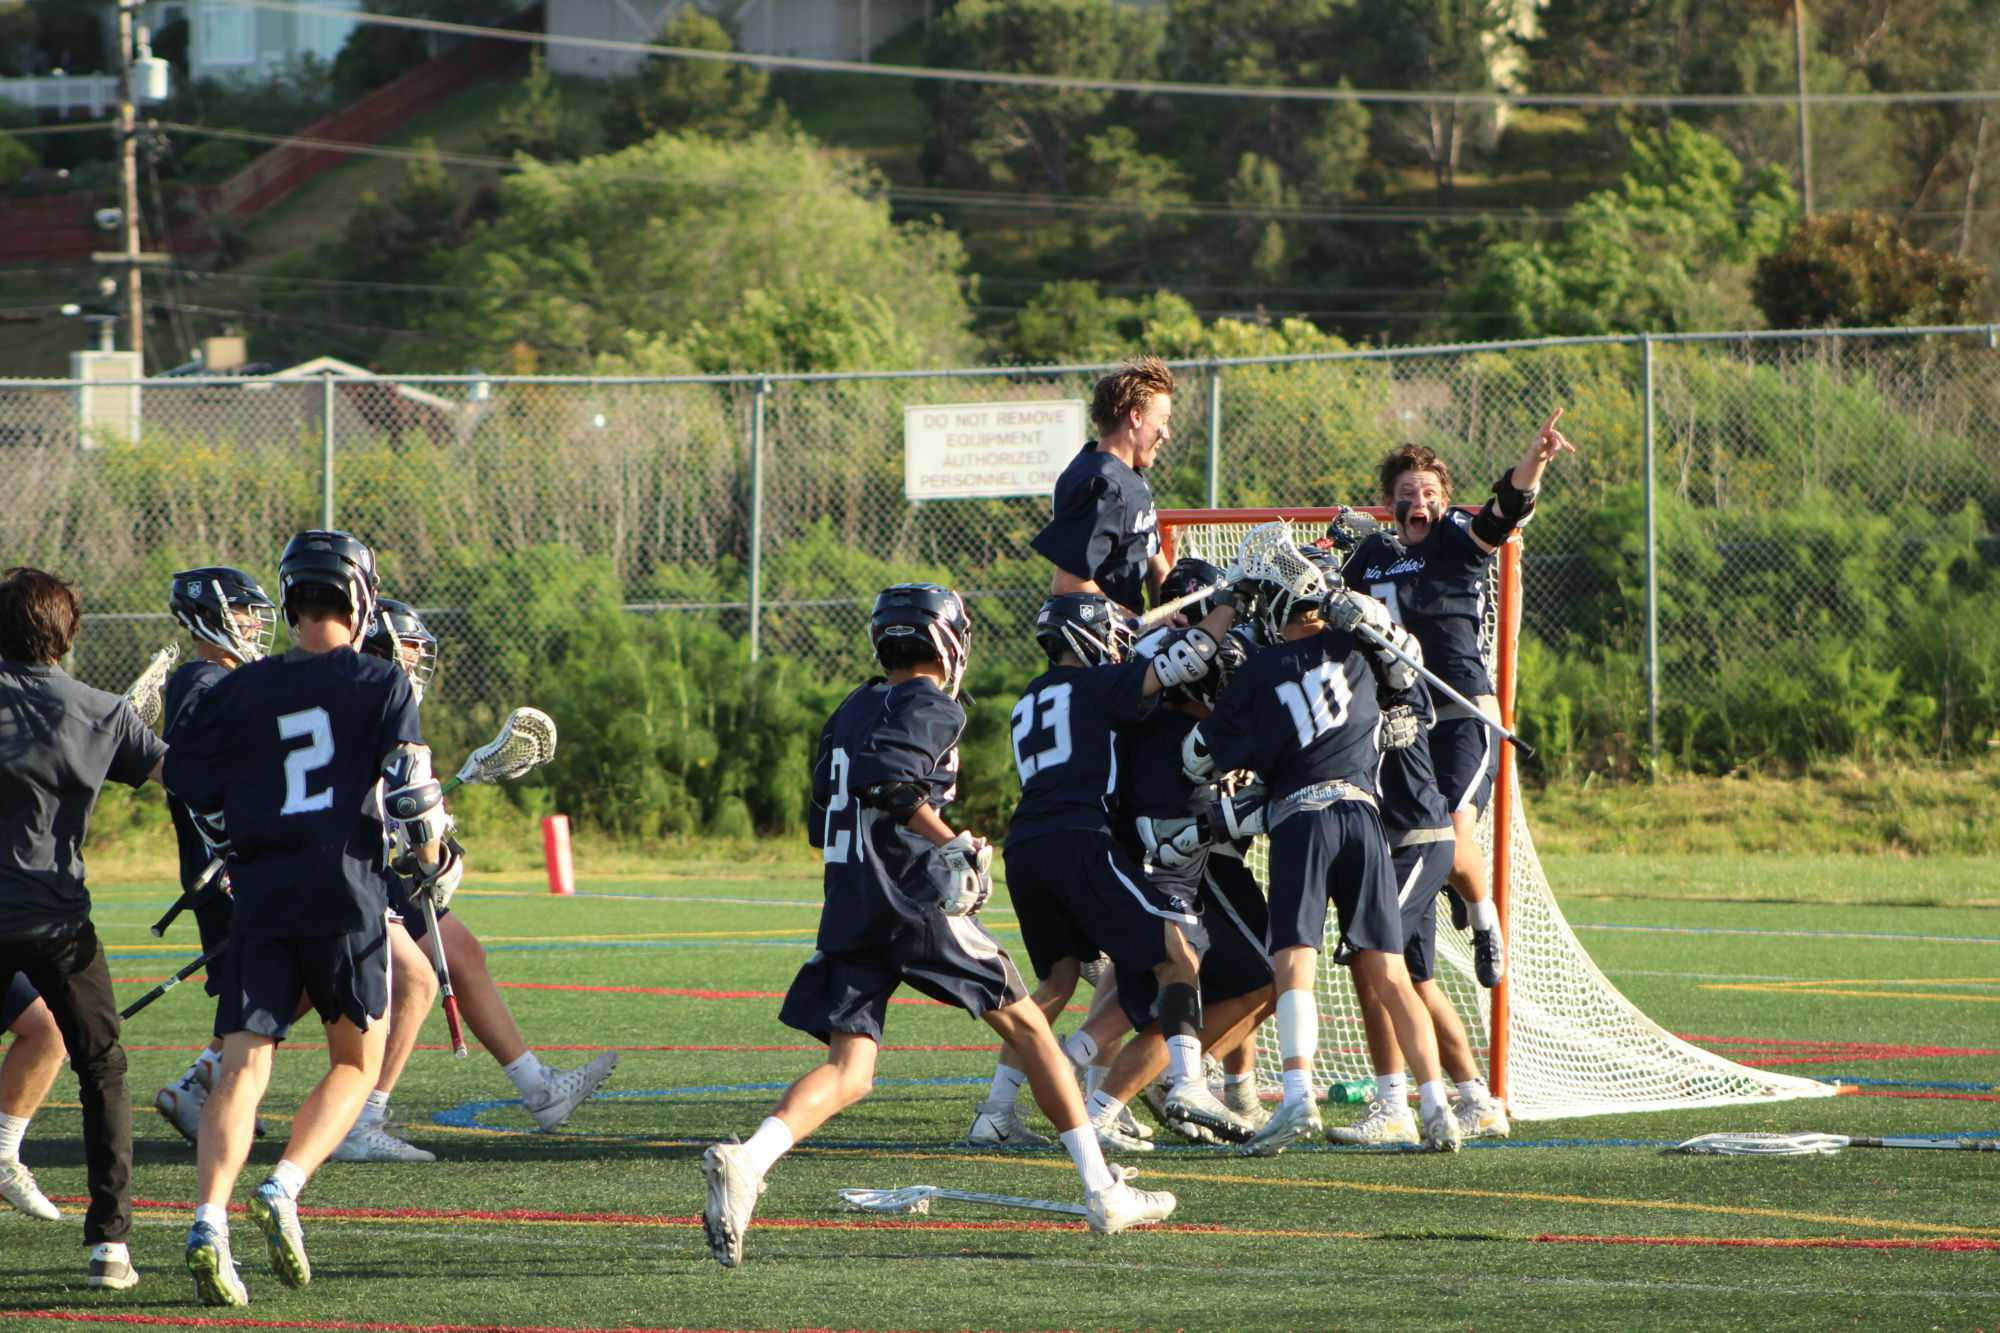 Marin+Catholic+players+celebrate+after+winning+this+NCS+playoff+game+by+one+point.